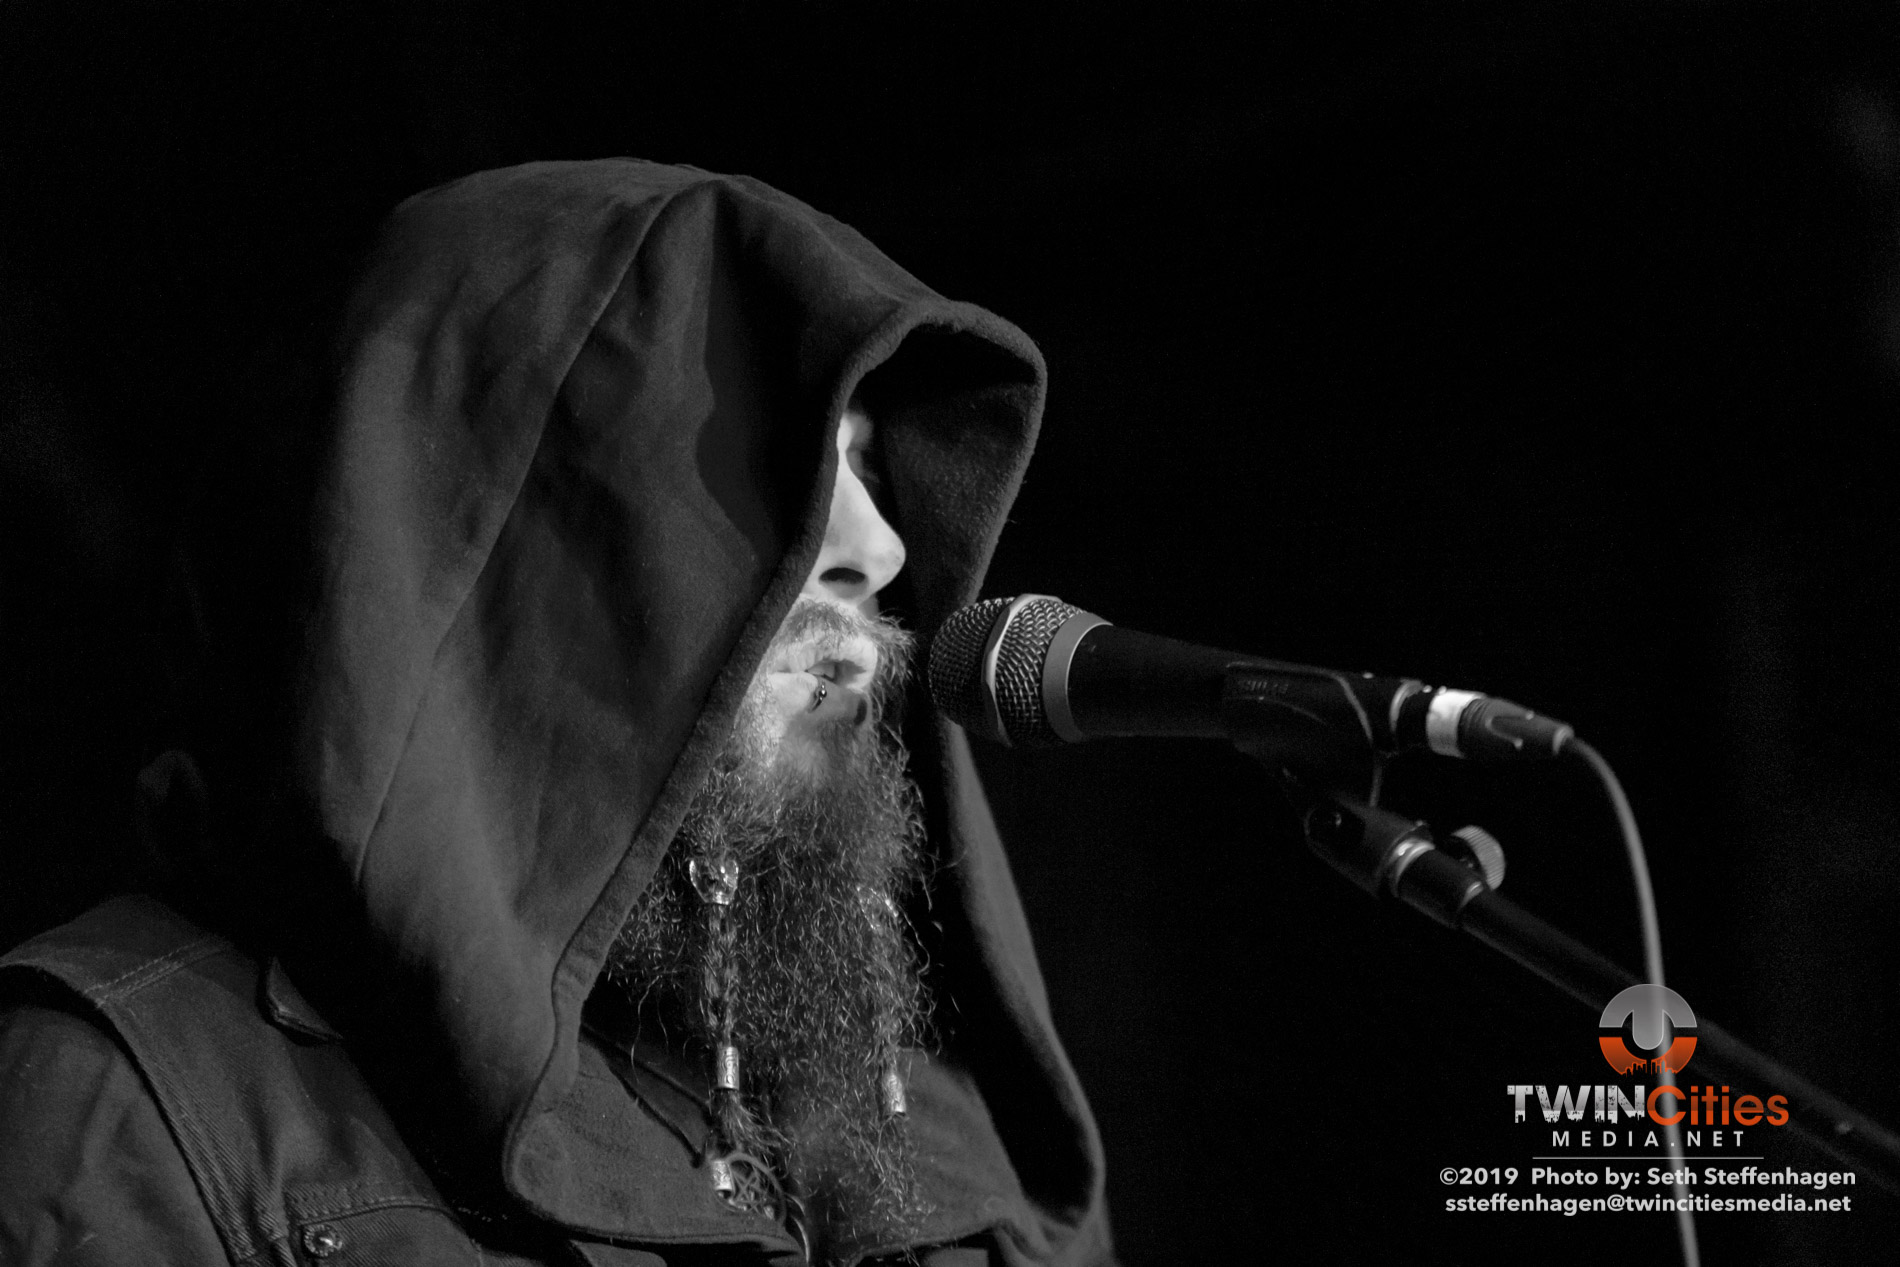 August 31, 2019 - Saint Paul, Minnesota, United States -  Ulkum live in concert at the Turf Club opening for Wovenhand.  (Photo by Seth Steffenhagen/Steffenhagen Photography)